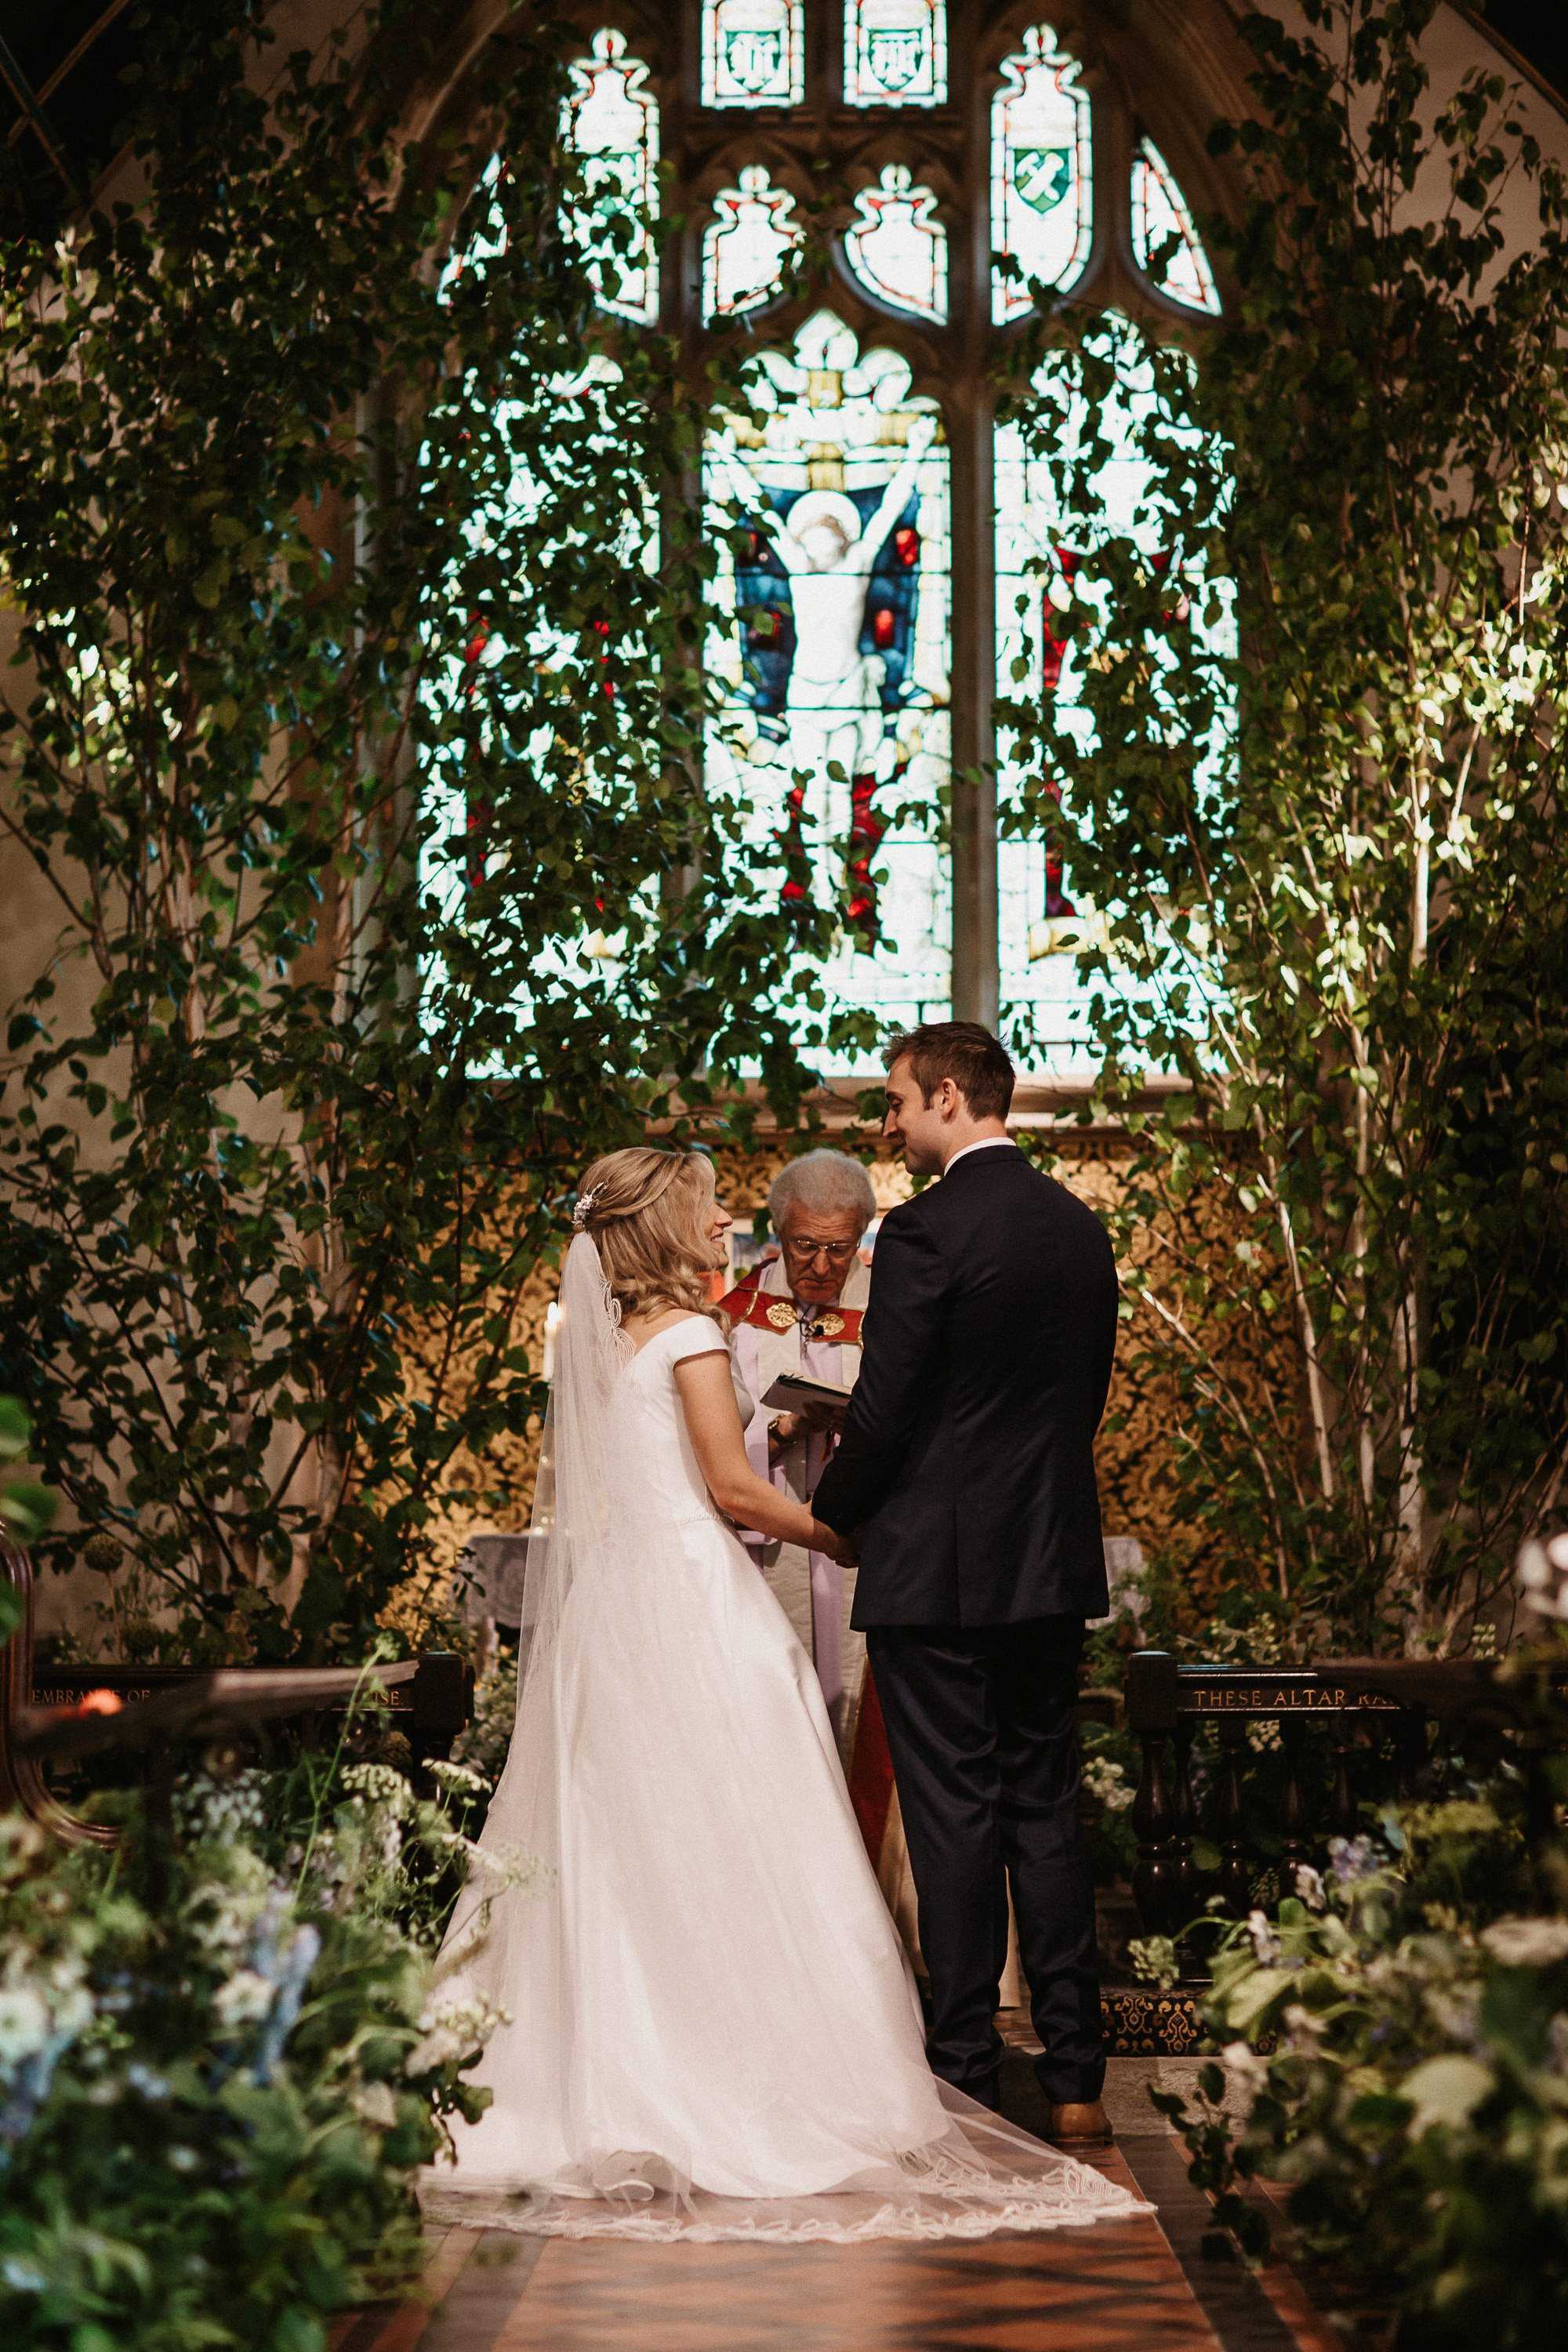 Beautiful english church wedding ceremony at Elmore church in Gloucestershire decorated with trees